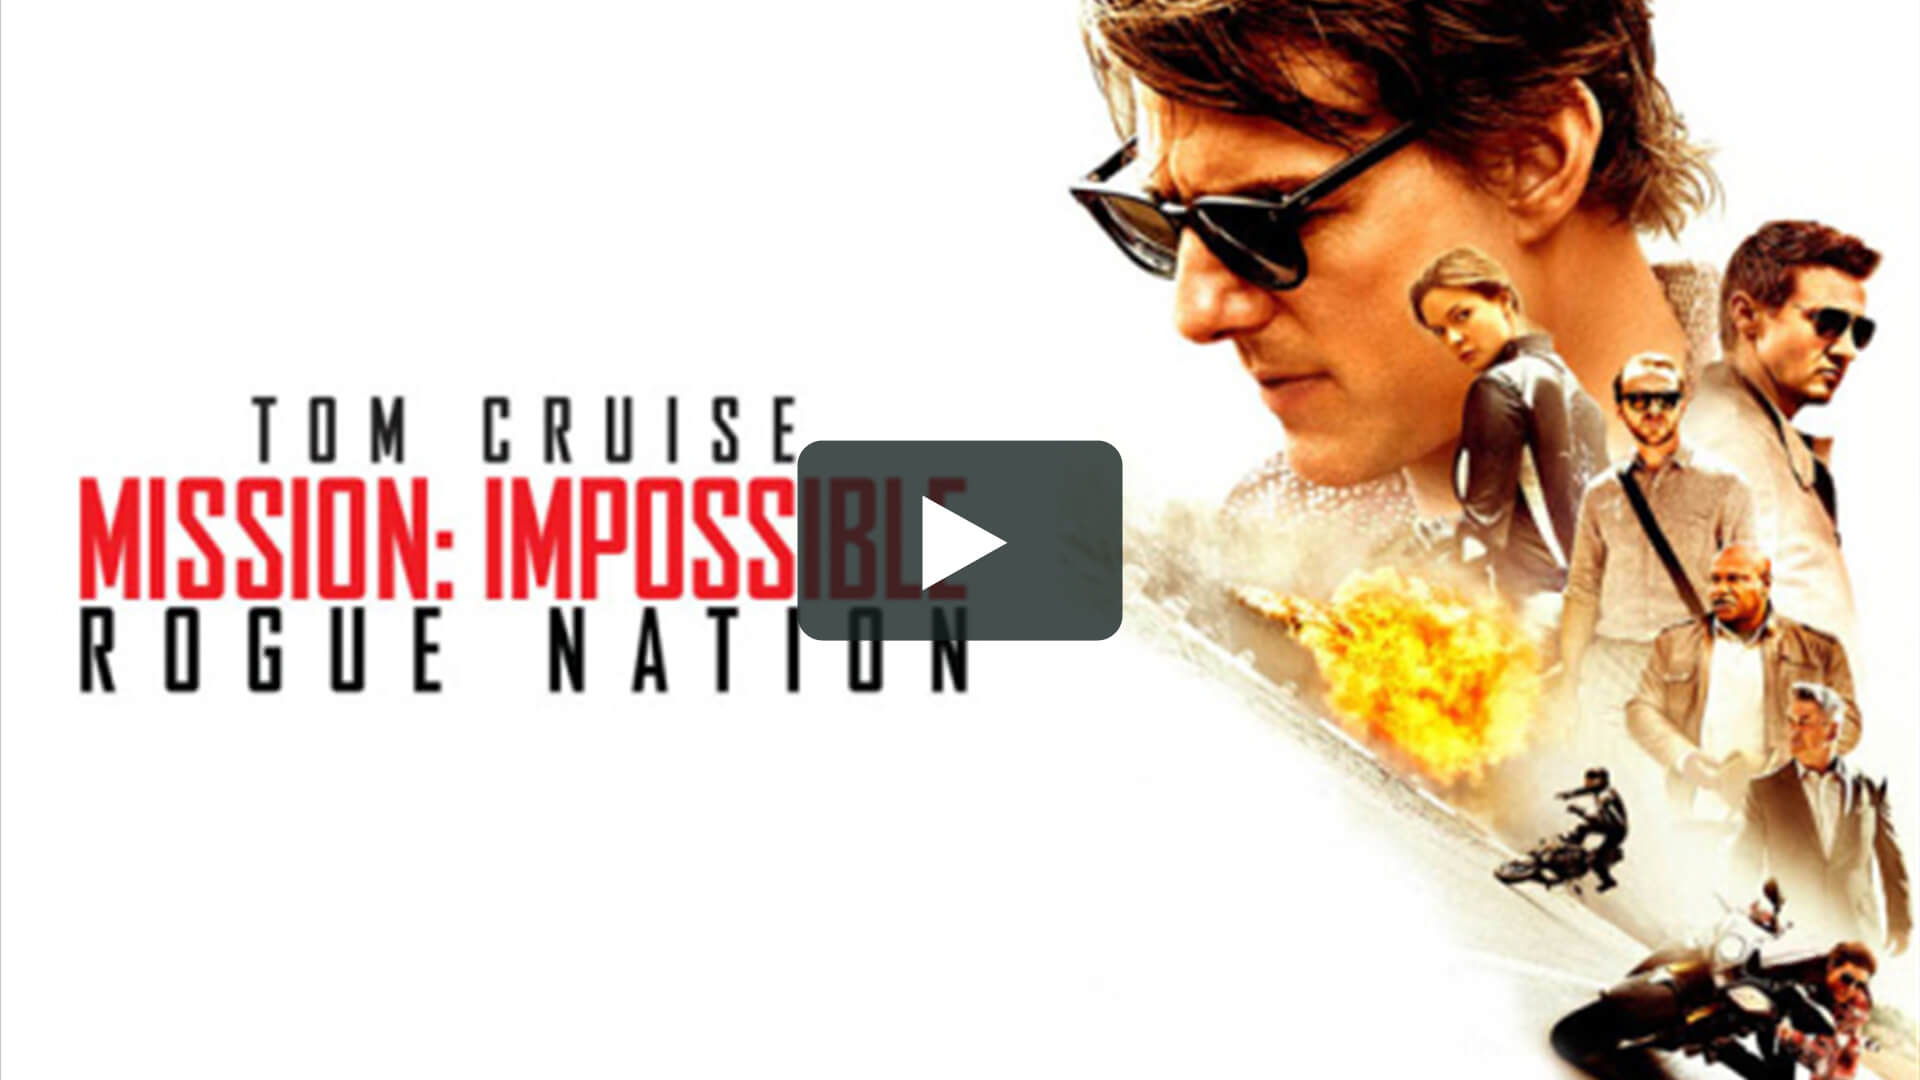 Mission: Impossible - Rogue Nation - 碟中諜5:神秘國度